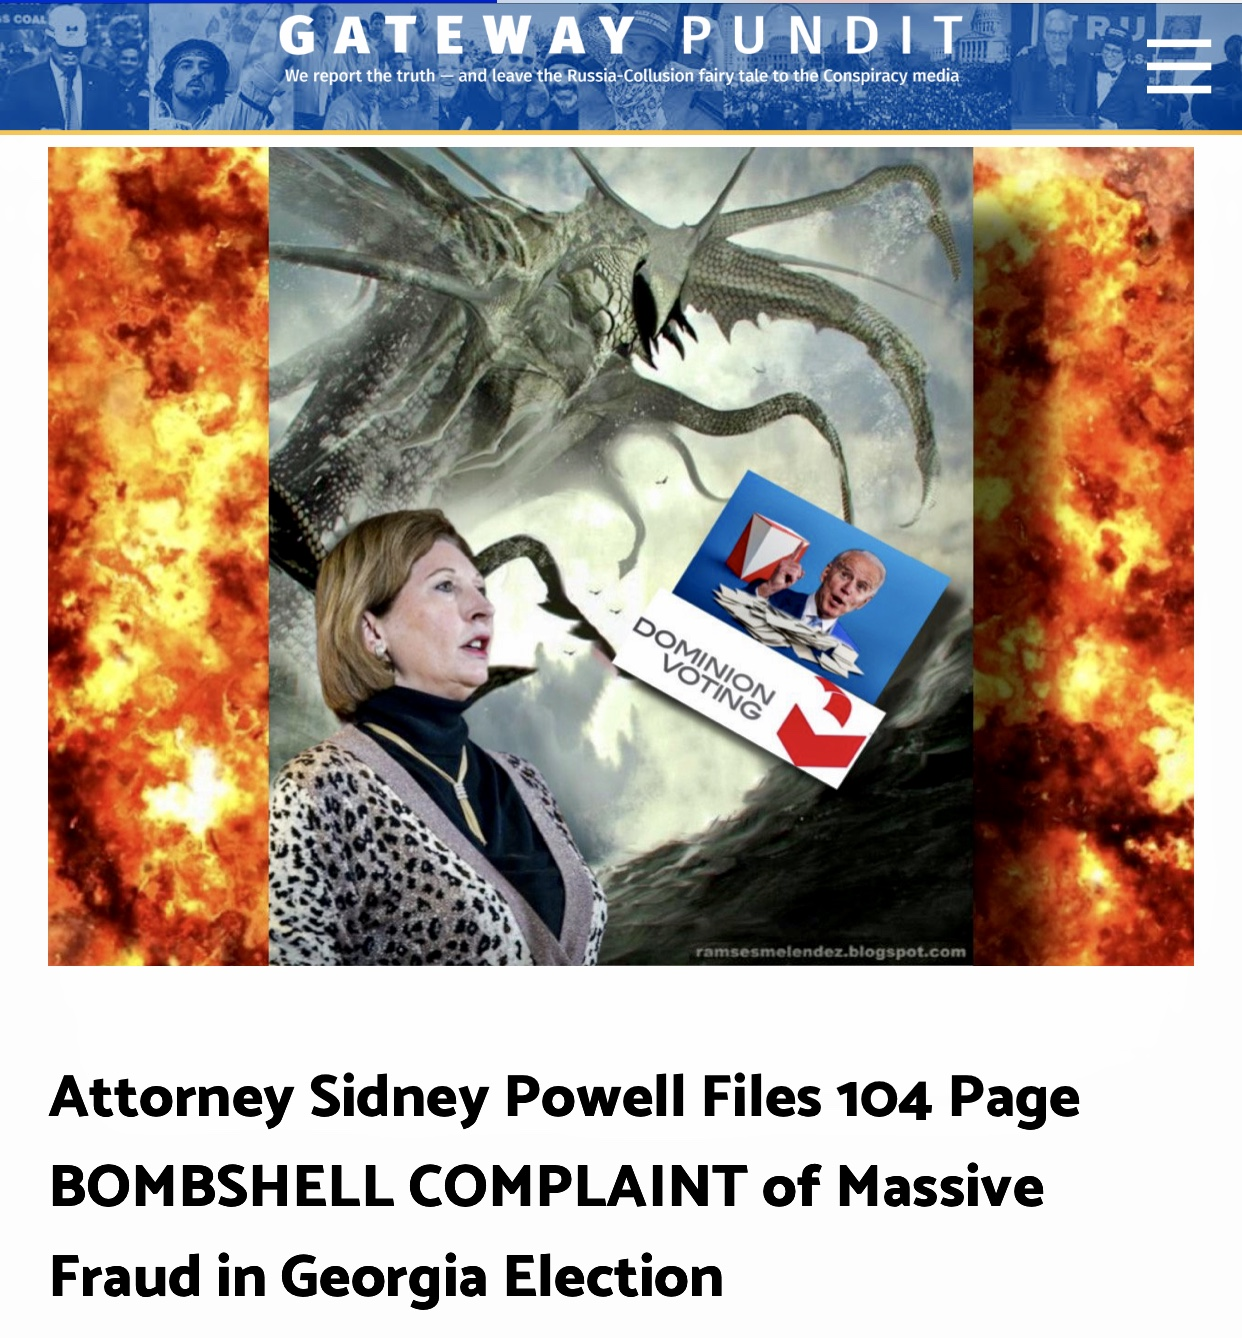 BREAKING: KRAKEN RELEASED! Attorney Sidney Powell Files 104 Page BOMBSHELL COMPLAINT of Massive Fraud in Georgia Election – Update: Michigan too